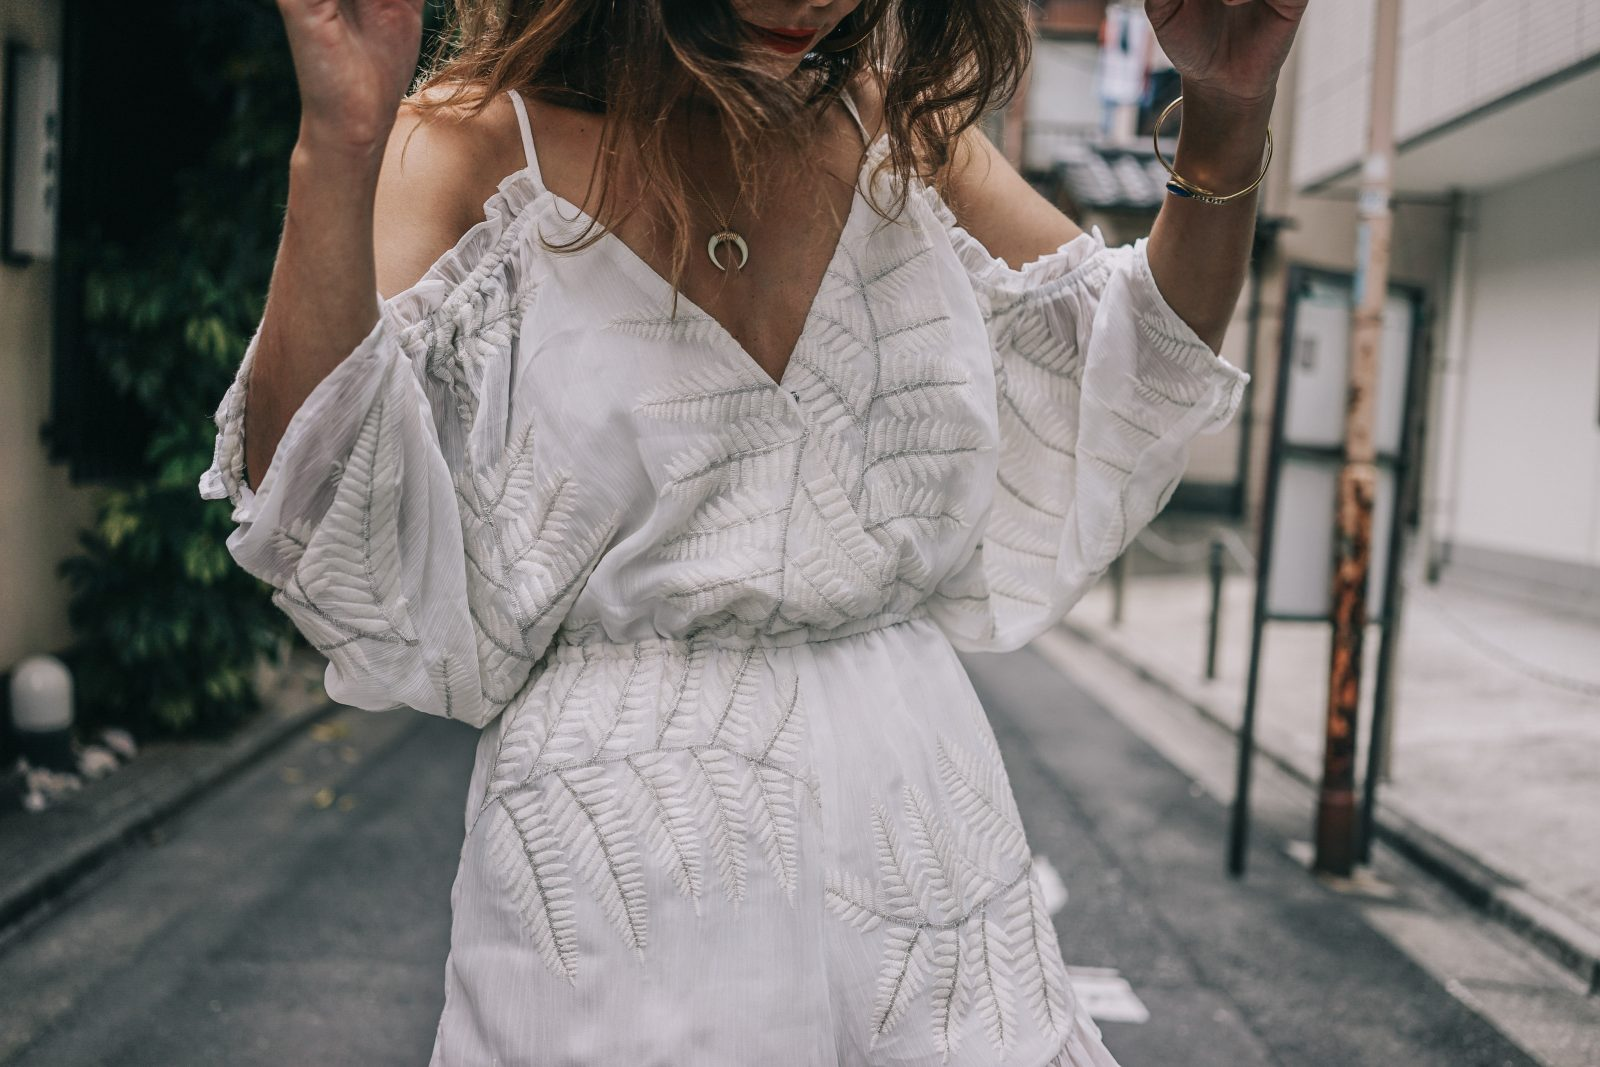 tokyo_travel_guide-outfit-collage_vintage-street_style-lovers_and_friends_jumpsuit-white_outfit-espadrilles-backpack-levis_denim_jacket-akihabara-69